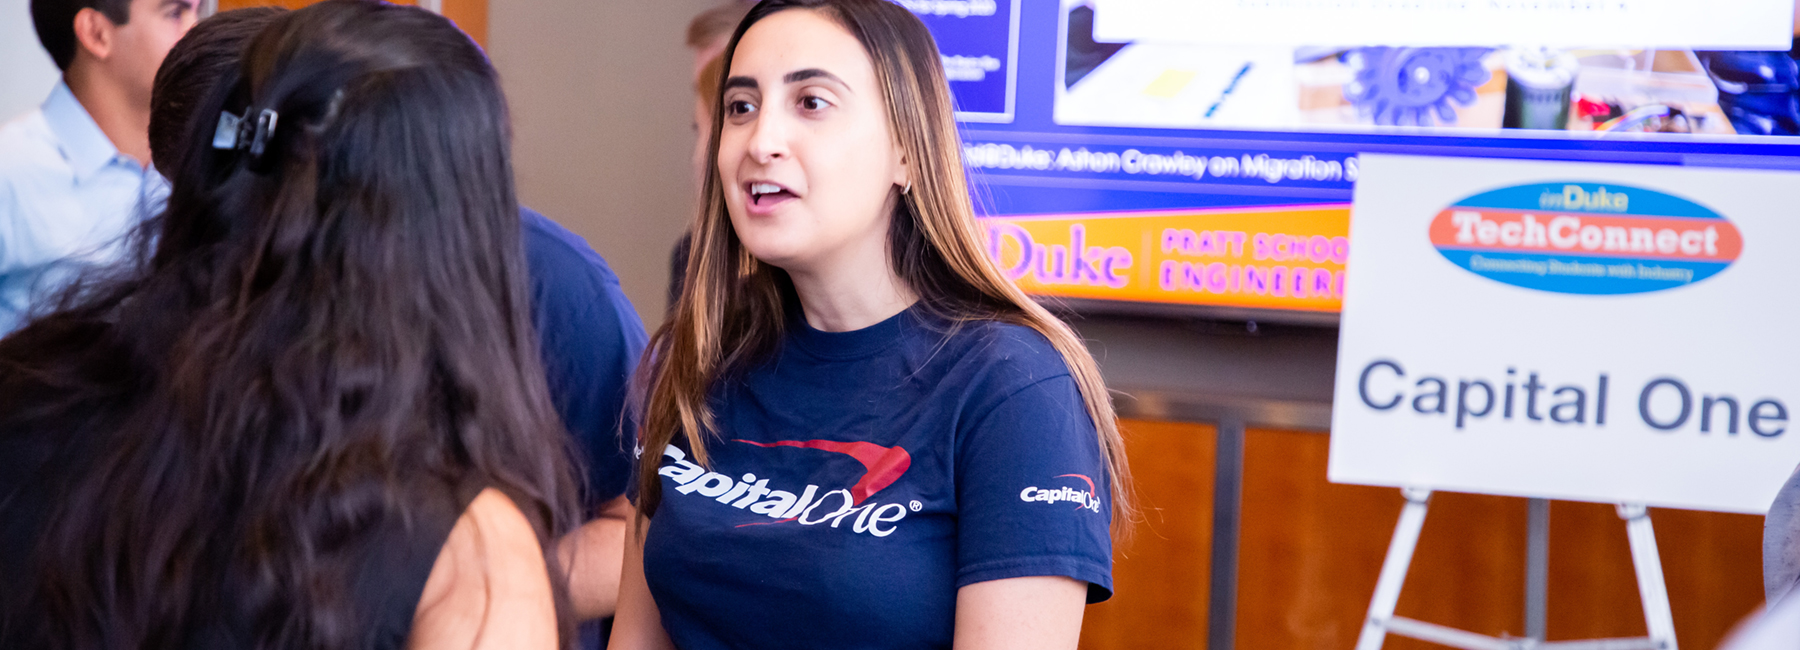 Techconnect 2019 Sept-CapitalOne